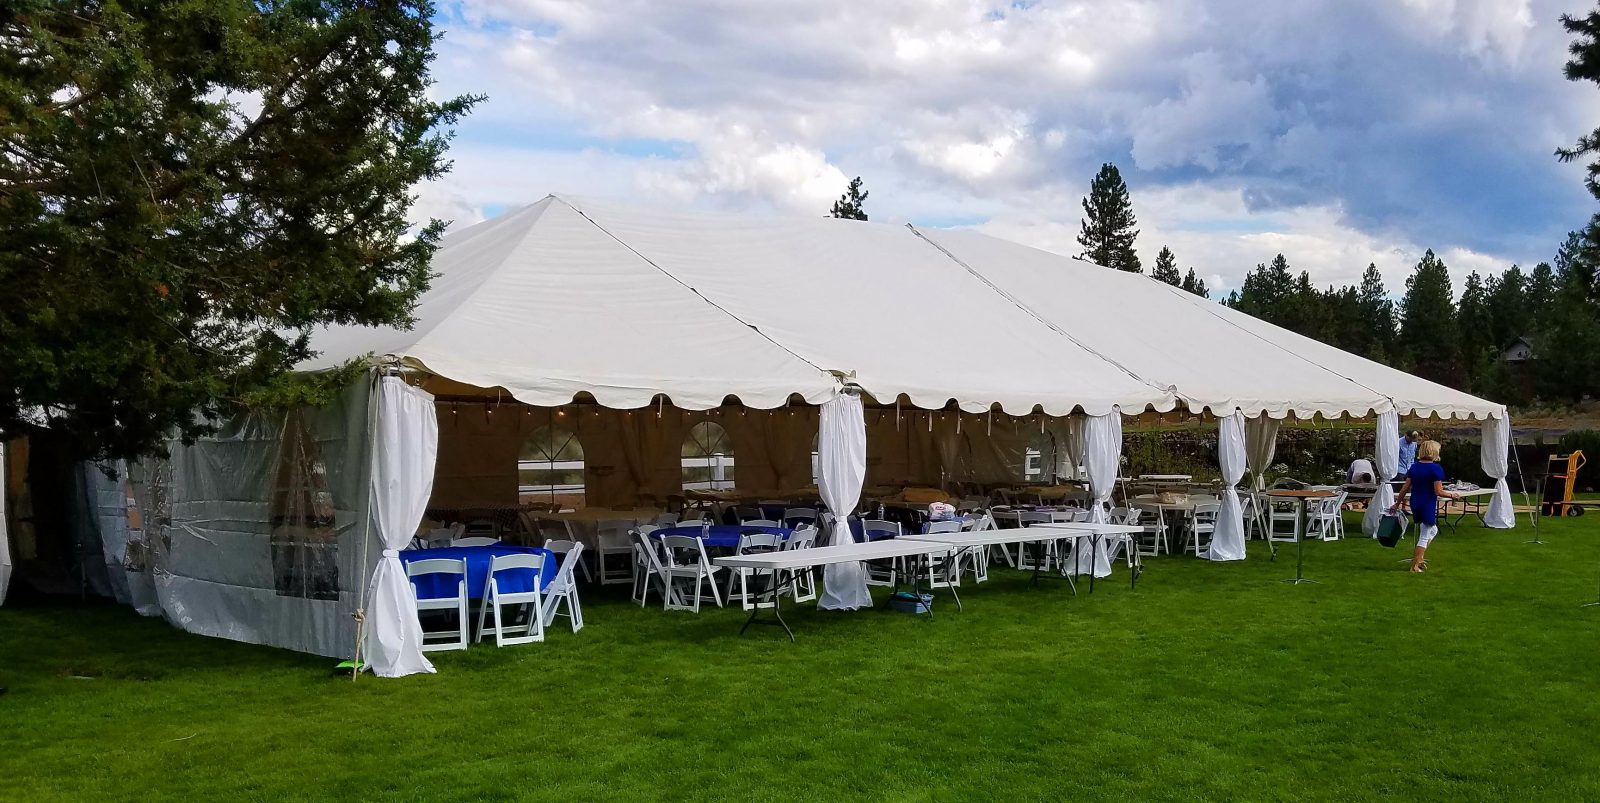 American Marquee Hire – The family-run business offers a wide range of marquee tents for weddings, birthdays, shows, exhibitions, festivals, and other celebrations.